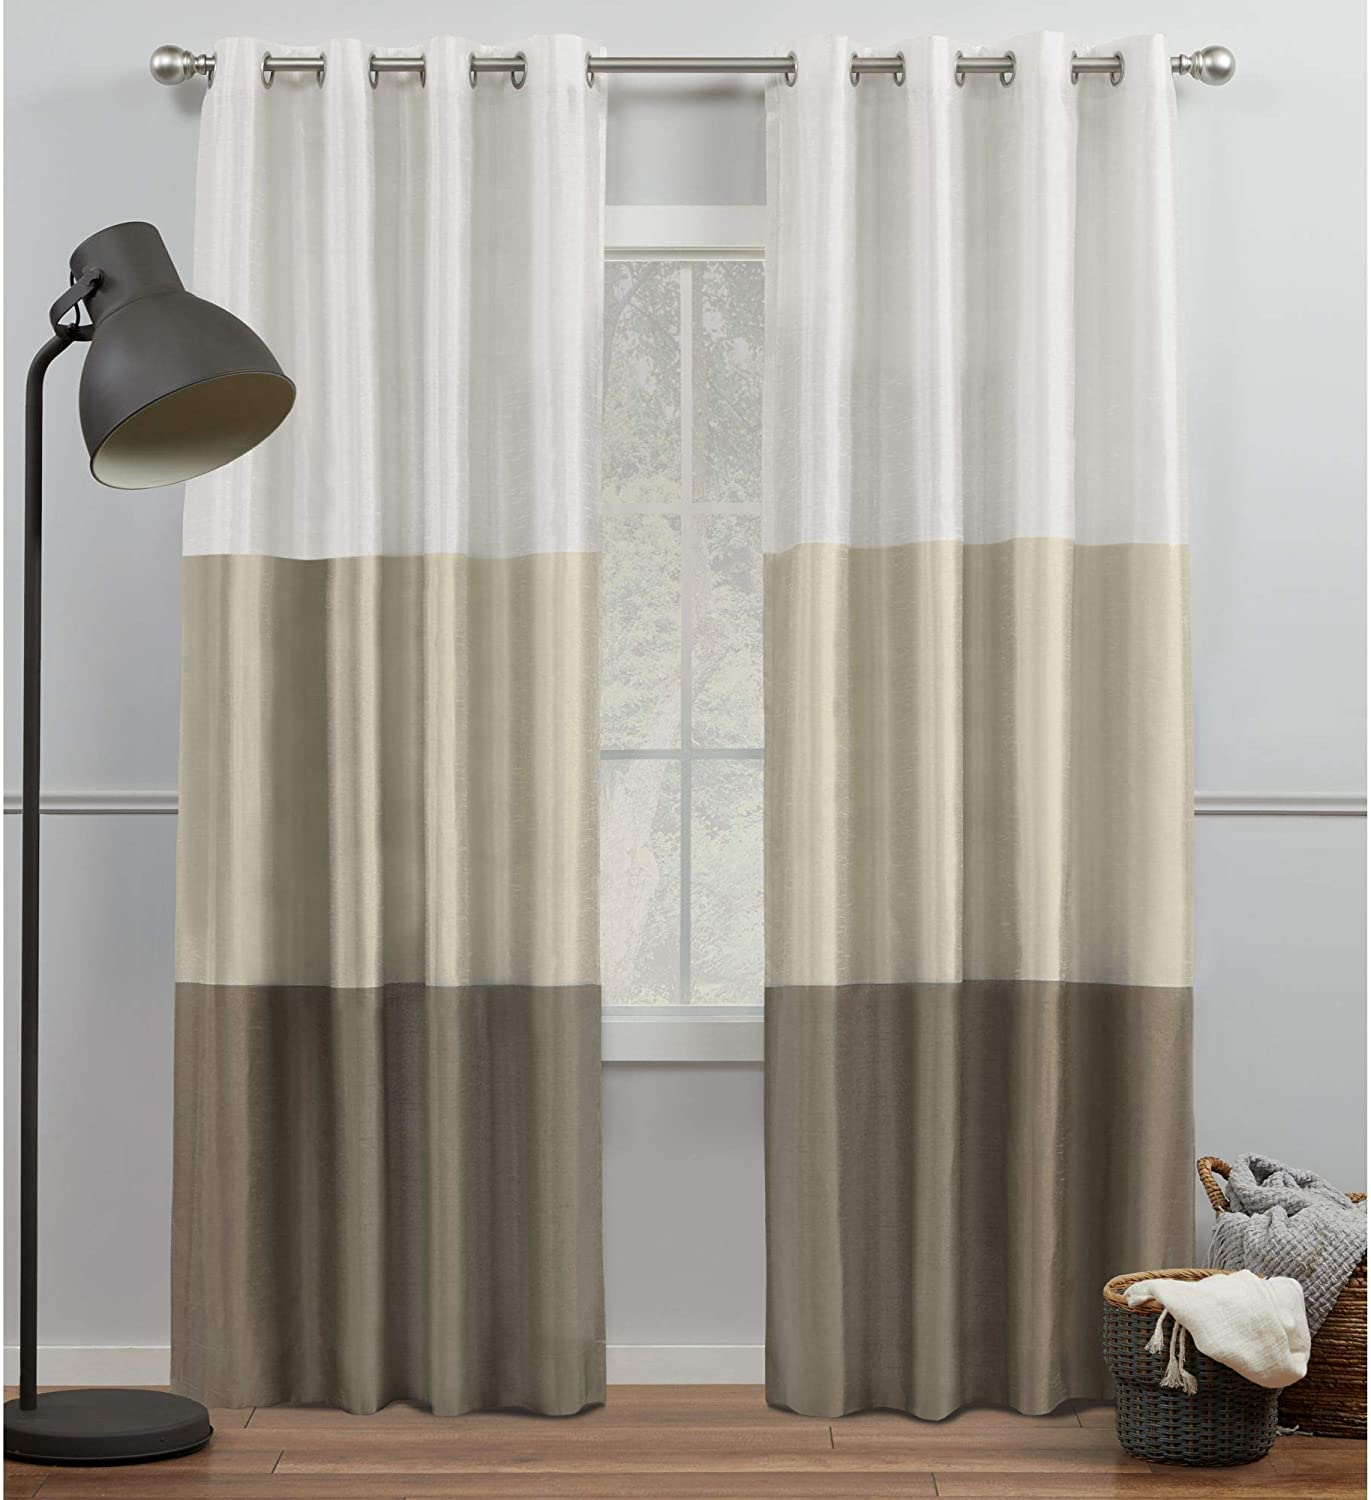 Exclusive Home Curtains Chateau Striped Faux Silk Grommet Top Curtain Panel Pair, 54x84, White/Sand